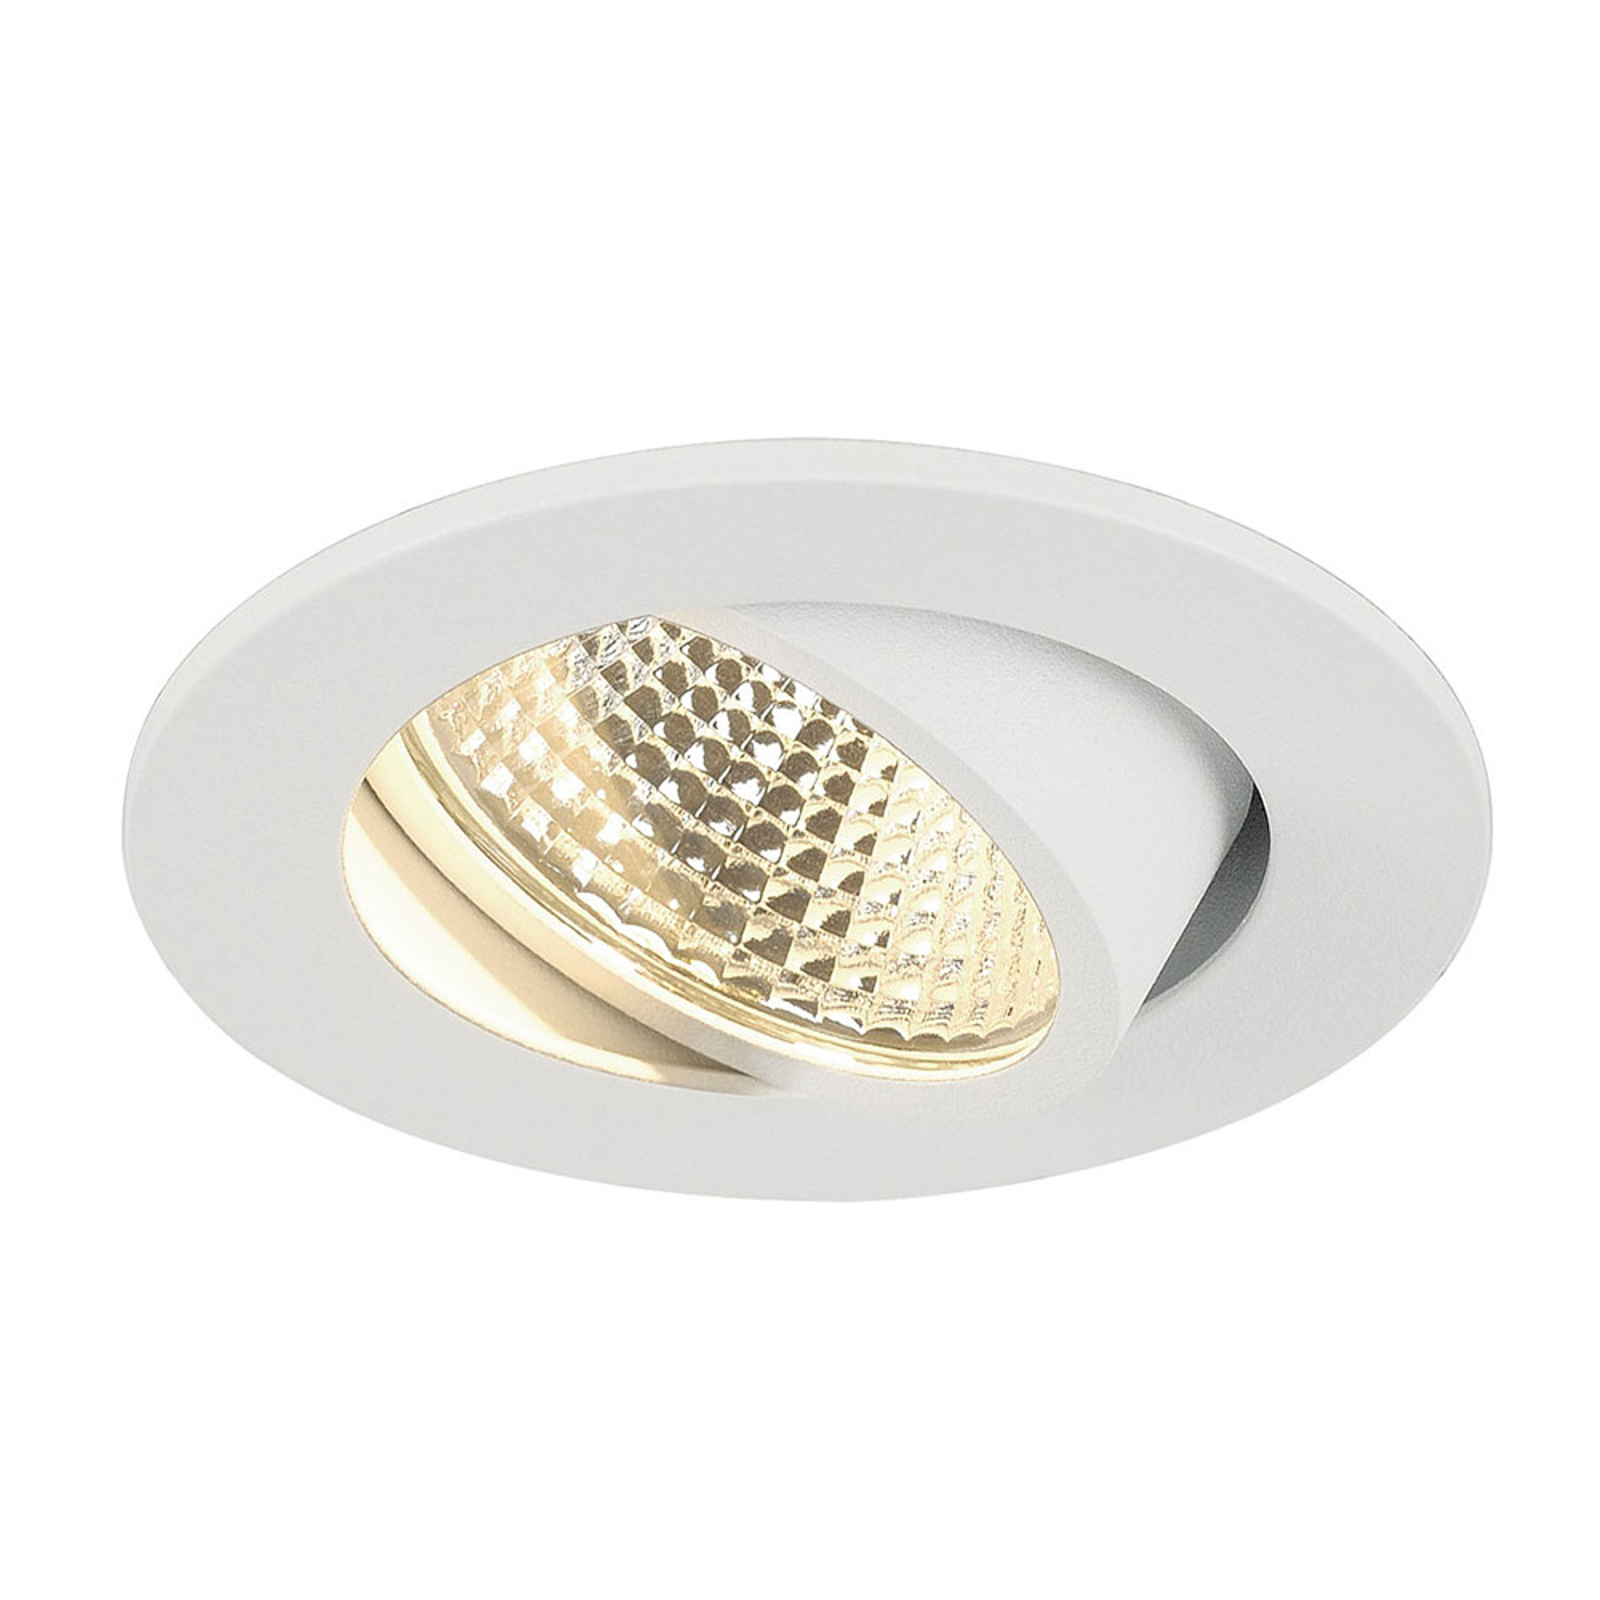 SLV New Tria 1 set LED inbouwspot rond wit